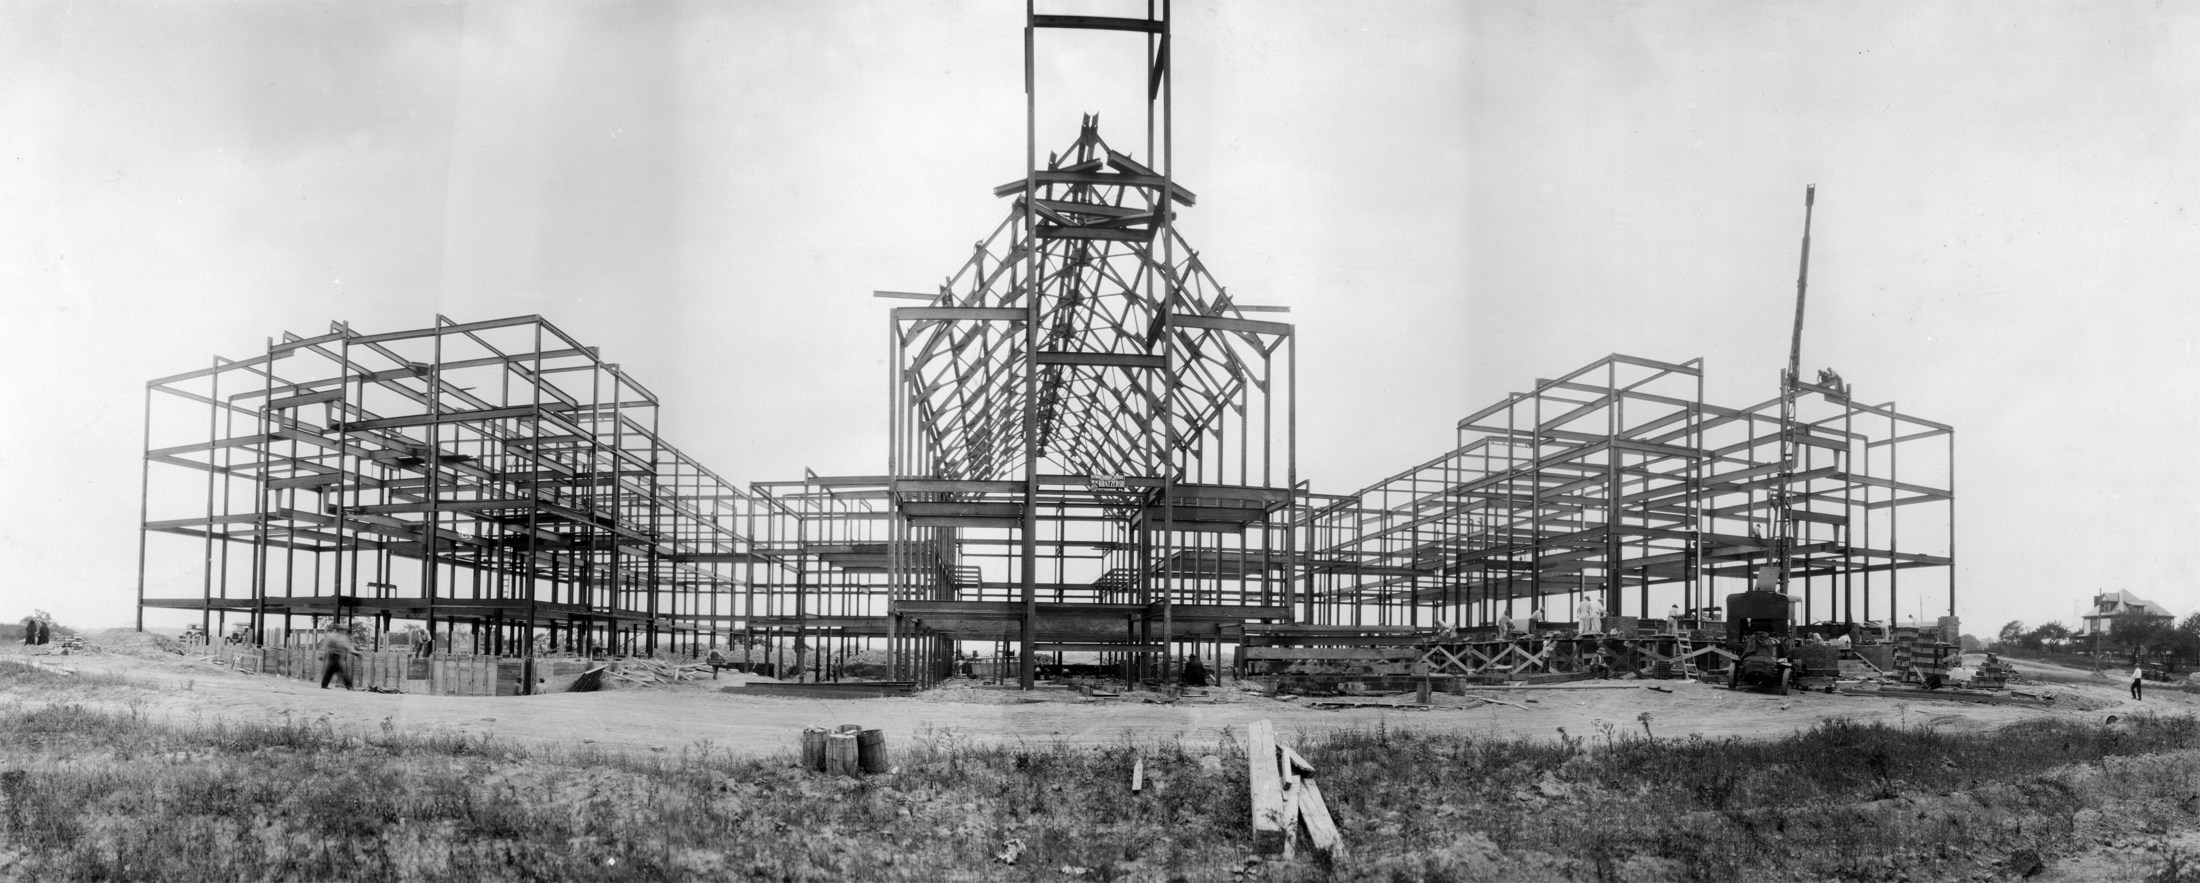 The steel structure of the OLSH school building during its construction in the 1930s